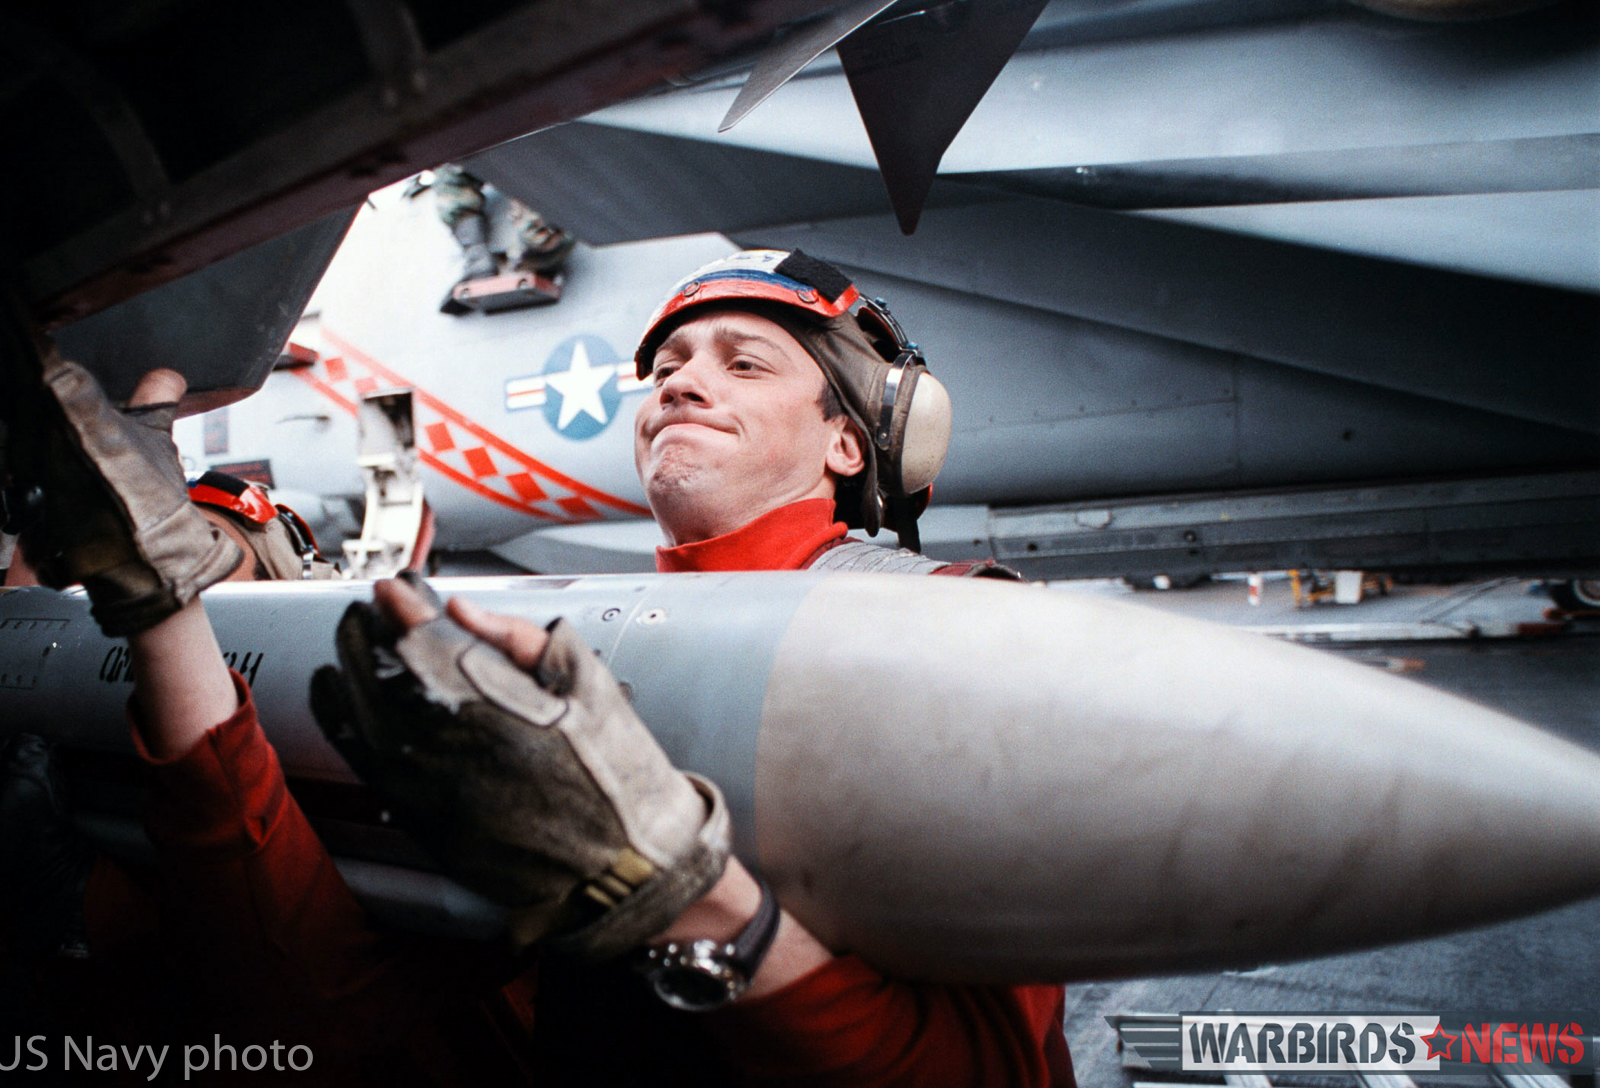 """ABOARD USS GEORGE WASHINGTON (February 21, 1998) --Aviation Ordnanceman 3rd Class Jacques Devries, from Houston, Texas, loads an AIM-7 """"Sparrow"""" medium range air-to-air missile onto an F-14B """"Tomcat"""" assigned to Fighter Squadron One Zero Two (VF-102). George Washington and its embarked Carrier Air Wing one (CVW1) are currently conducting operations in the Persian Gulf to enforce UN sanctions against Iraq. U.S. Navy photo by Photographer's Mate 3rd Class Sammy Dallal (Released) Digital Film Scan"""